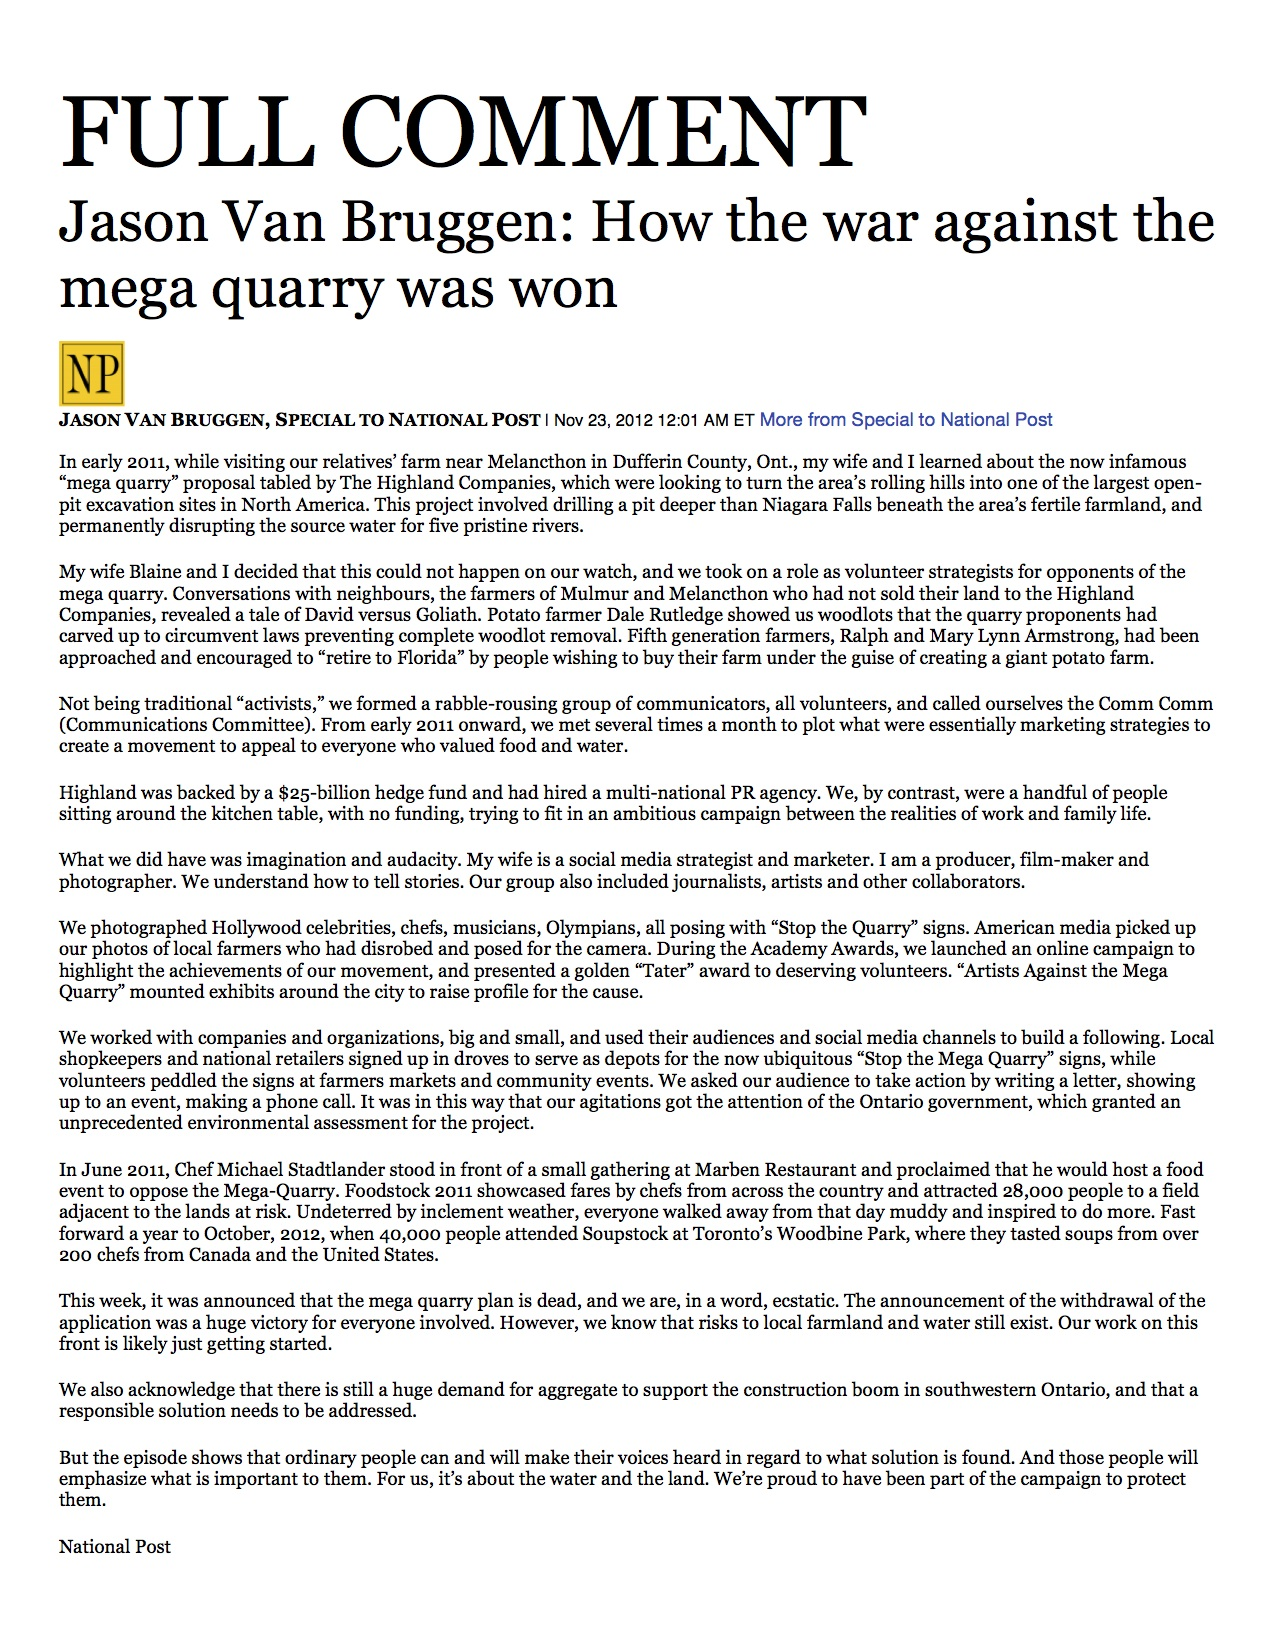 Jason Van Bruggen.NationalPostarticle.jpg